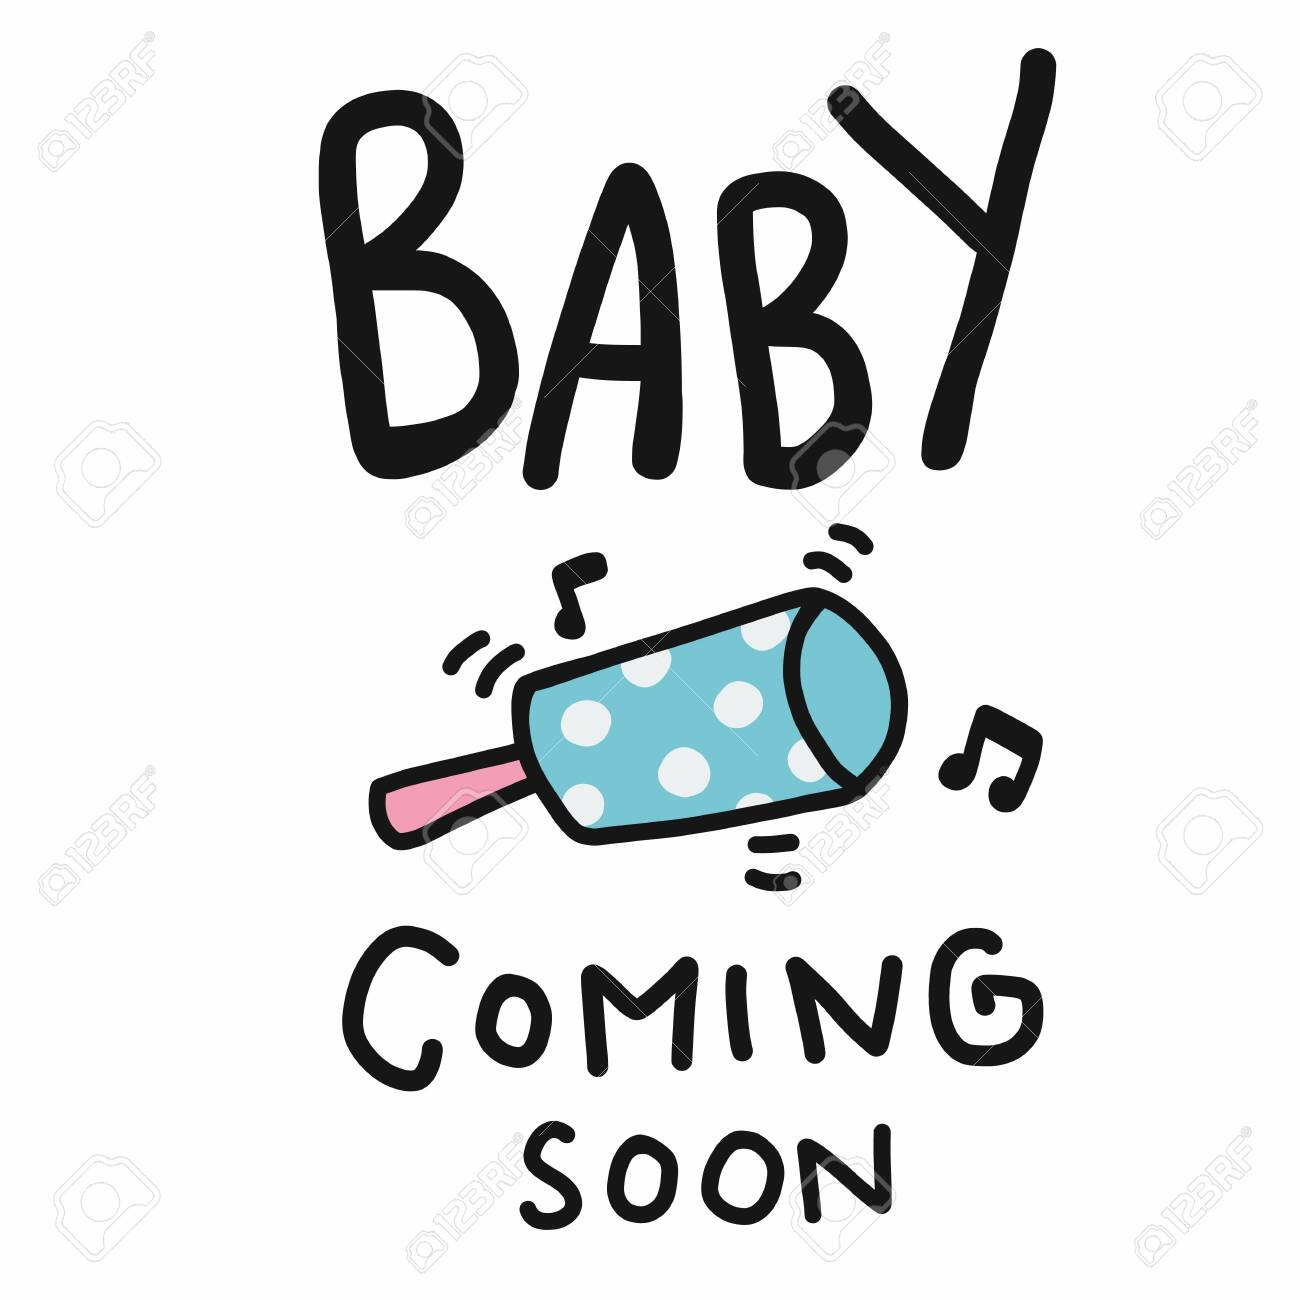 Baby Coming Soon Word Cartoon Vector Illustration Royalty Free Cliparts Vectors And Stock Illustration Image 147798096